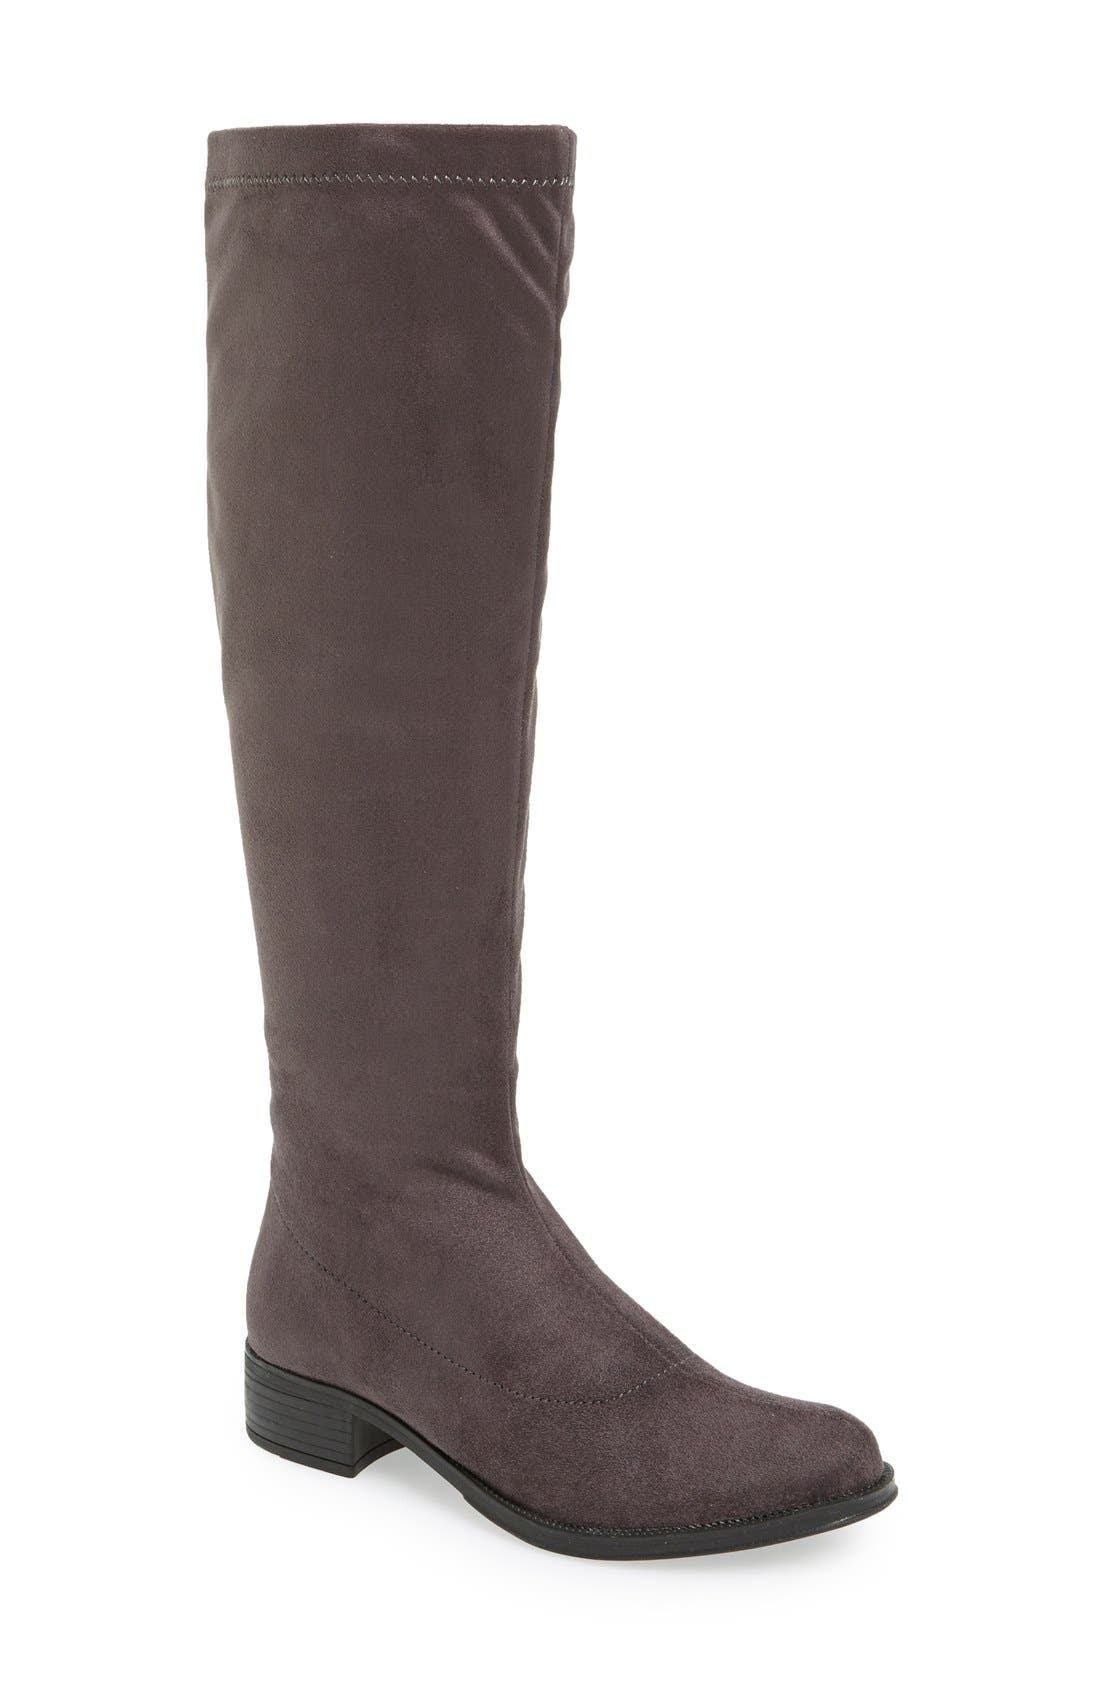 Alternate Image 1 Selected - Bussola 'Sofia' Tall Boot (Women)